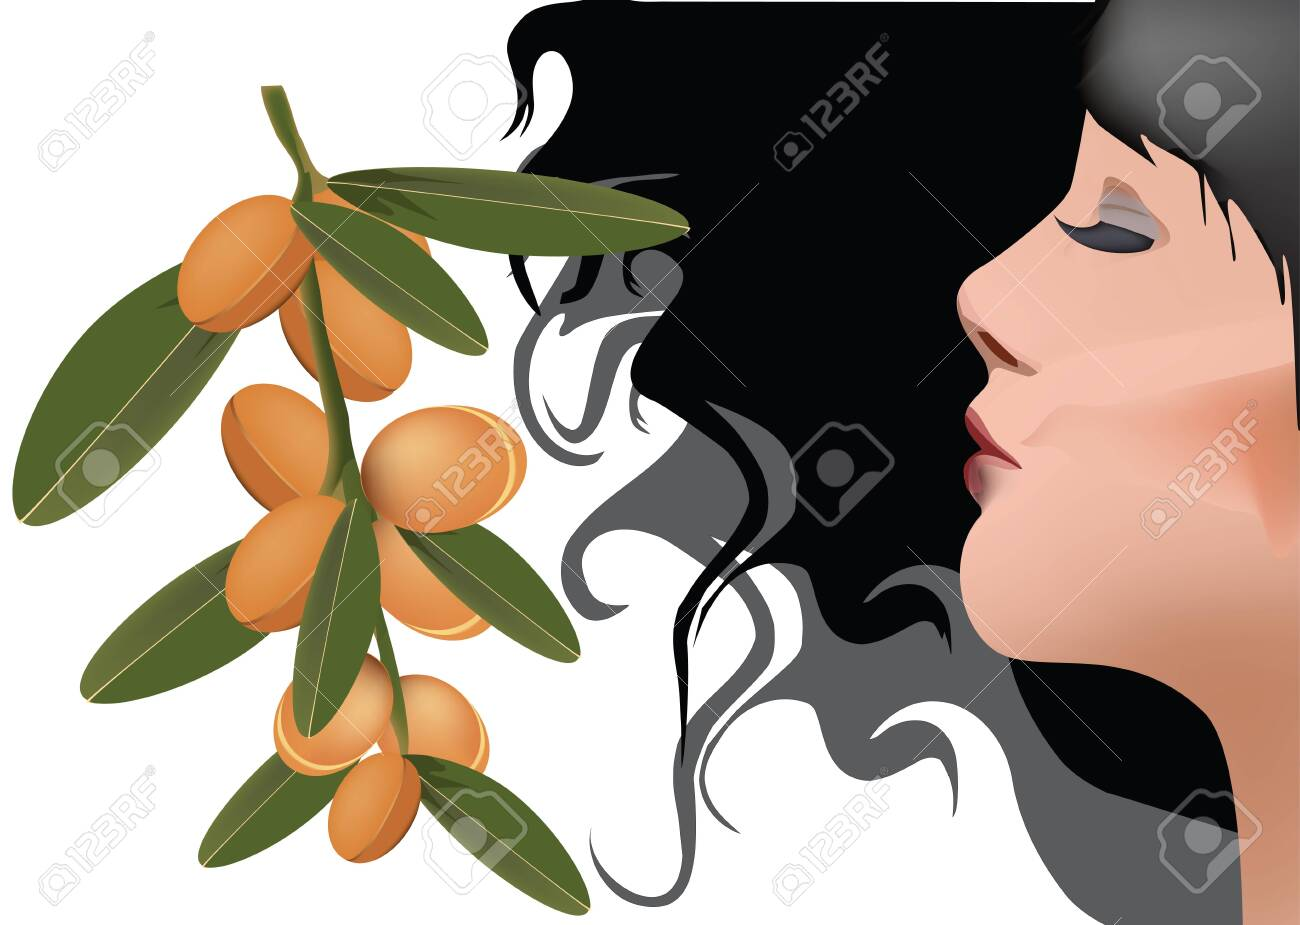 dark woman profile with fruits of aesthetic argan - 149538345